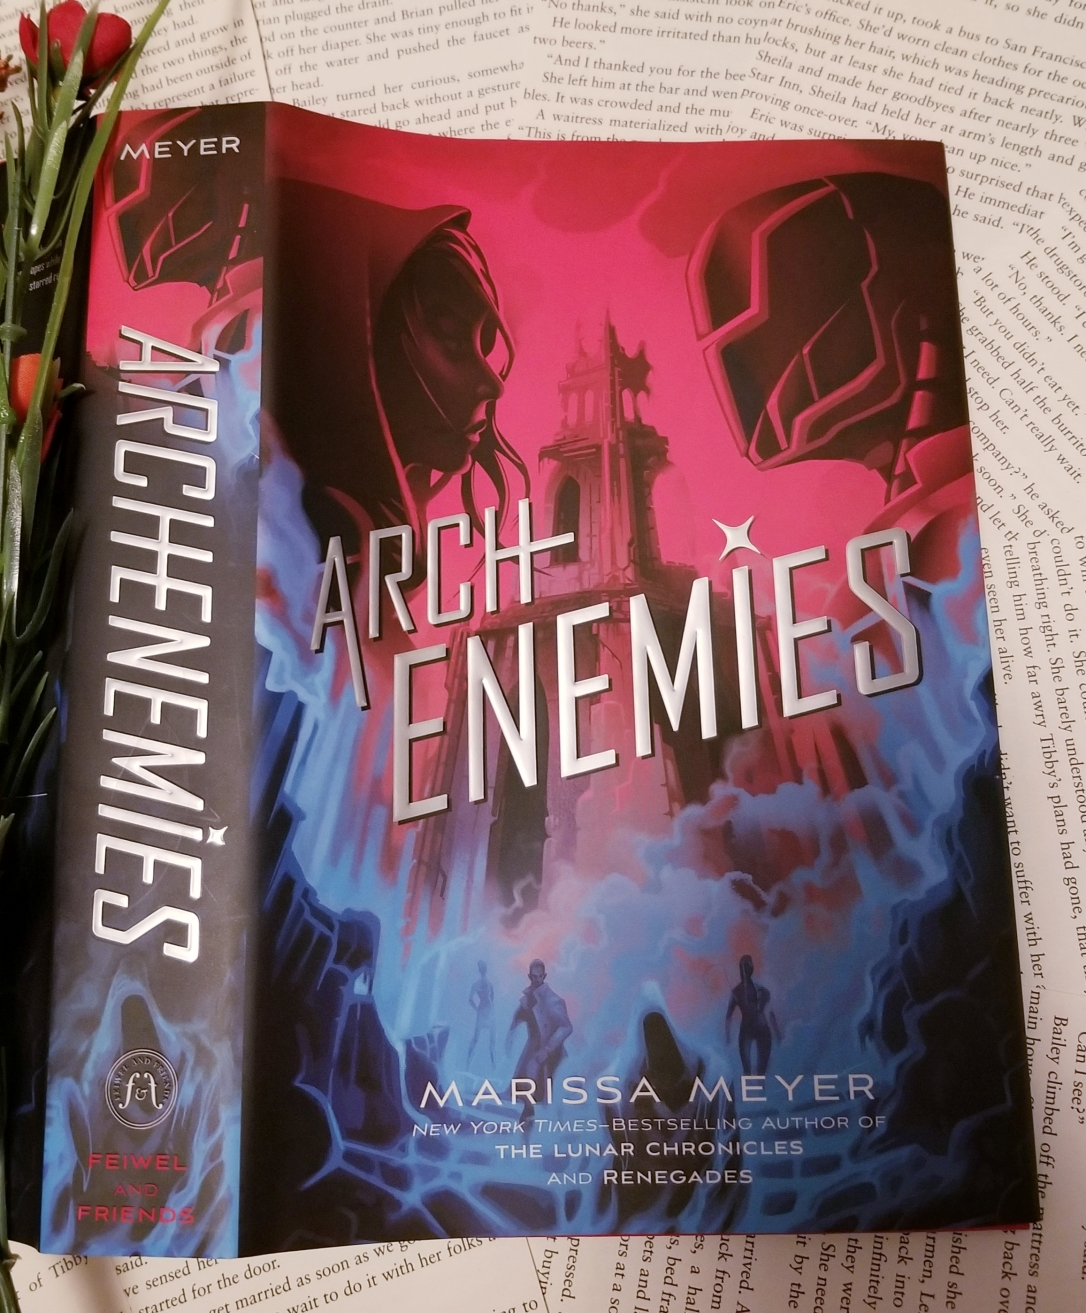 How To Review Book You Havent Read >> Book Review Archenemies By Marissa Meyer Spoilers For Renegades